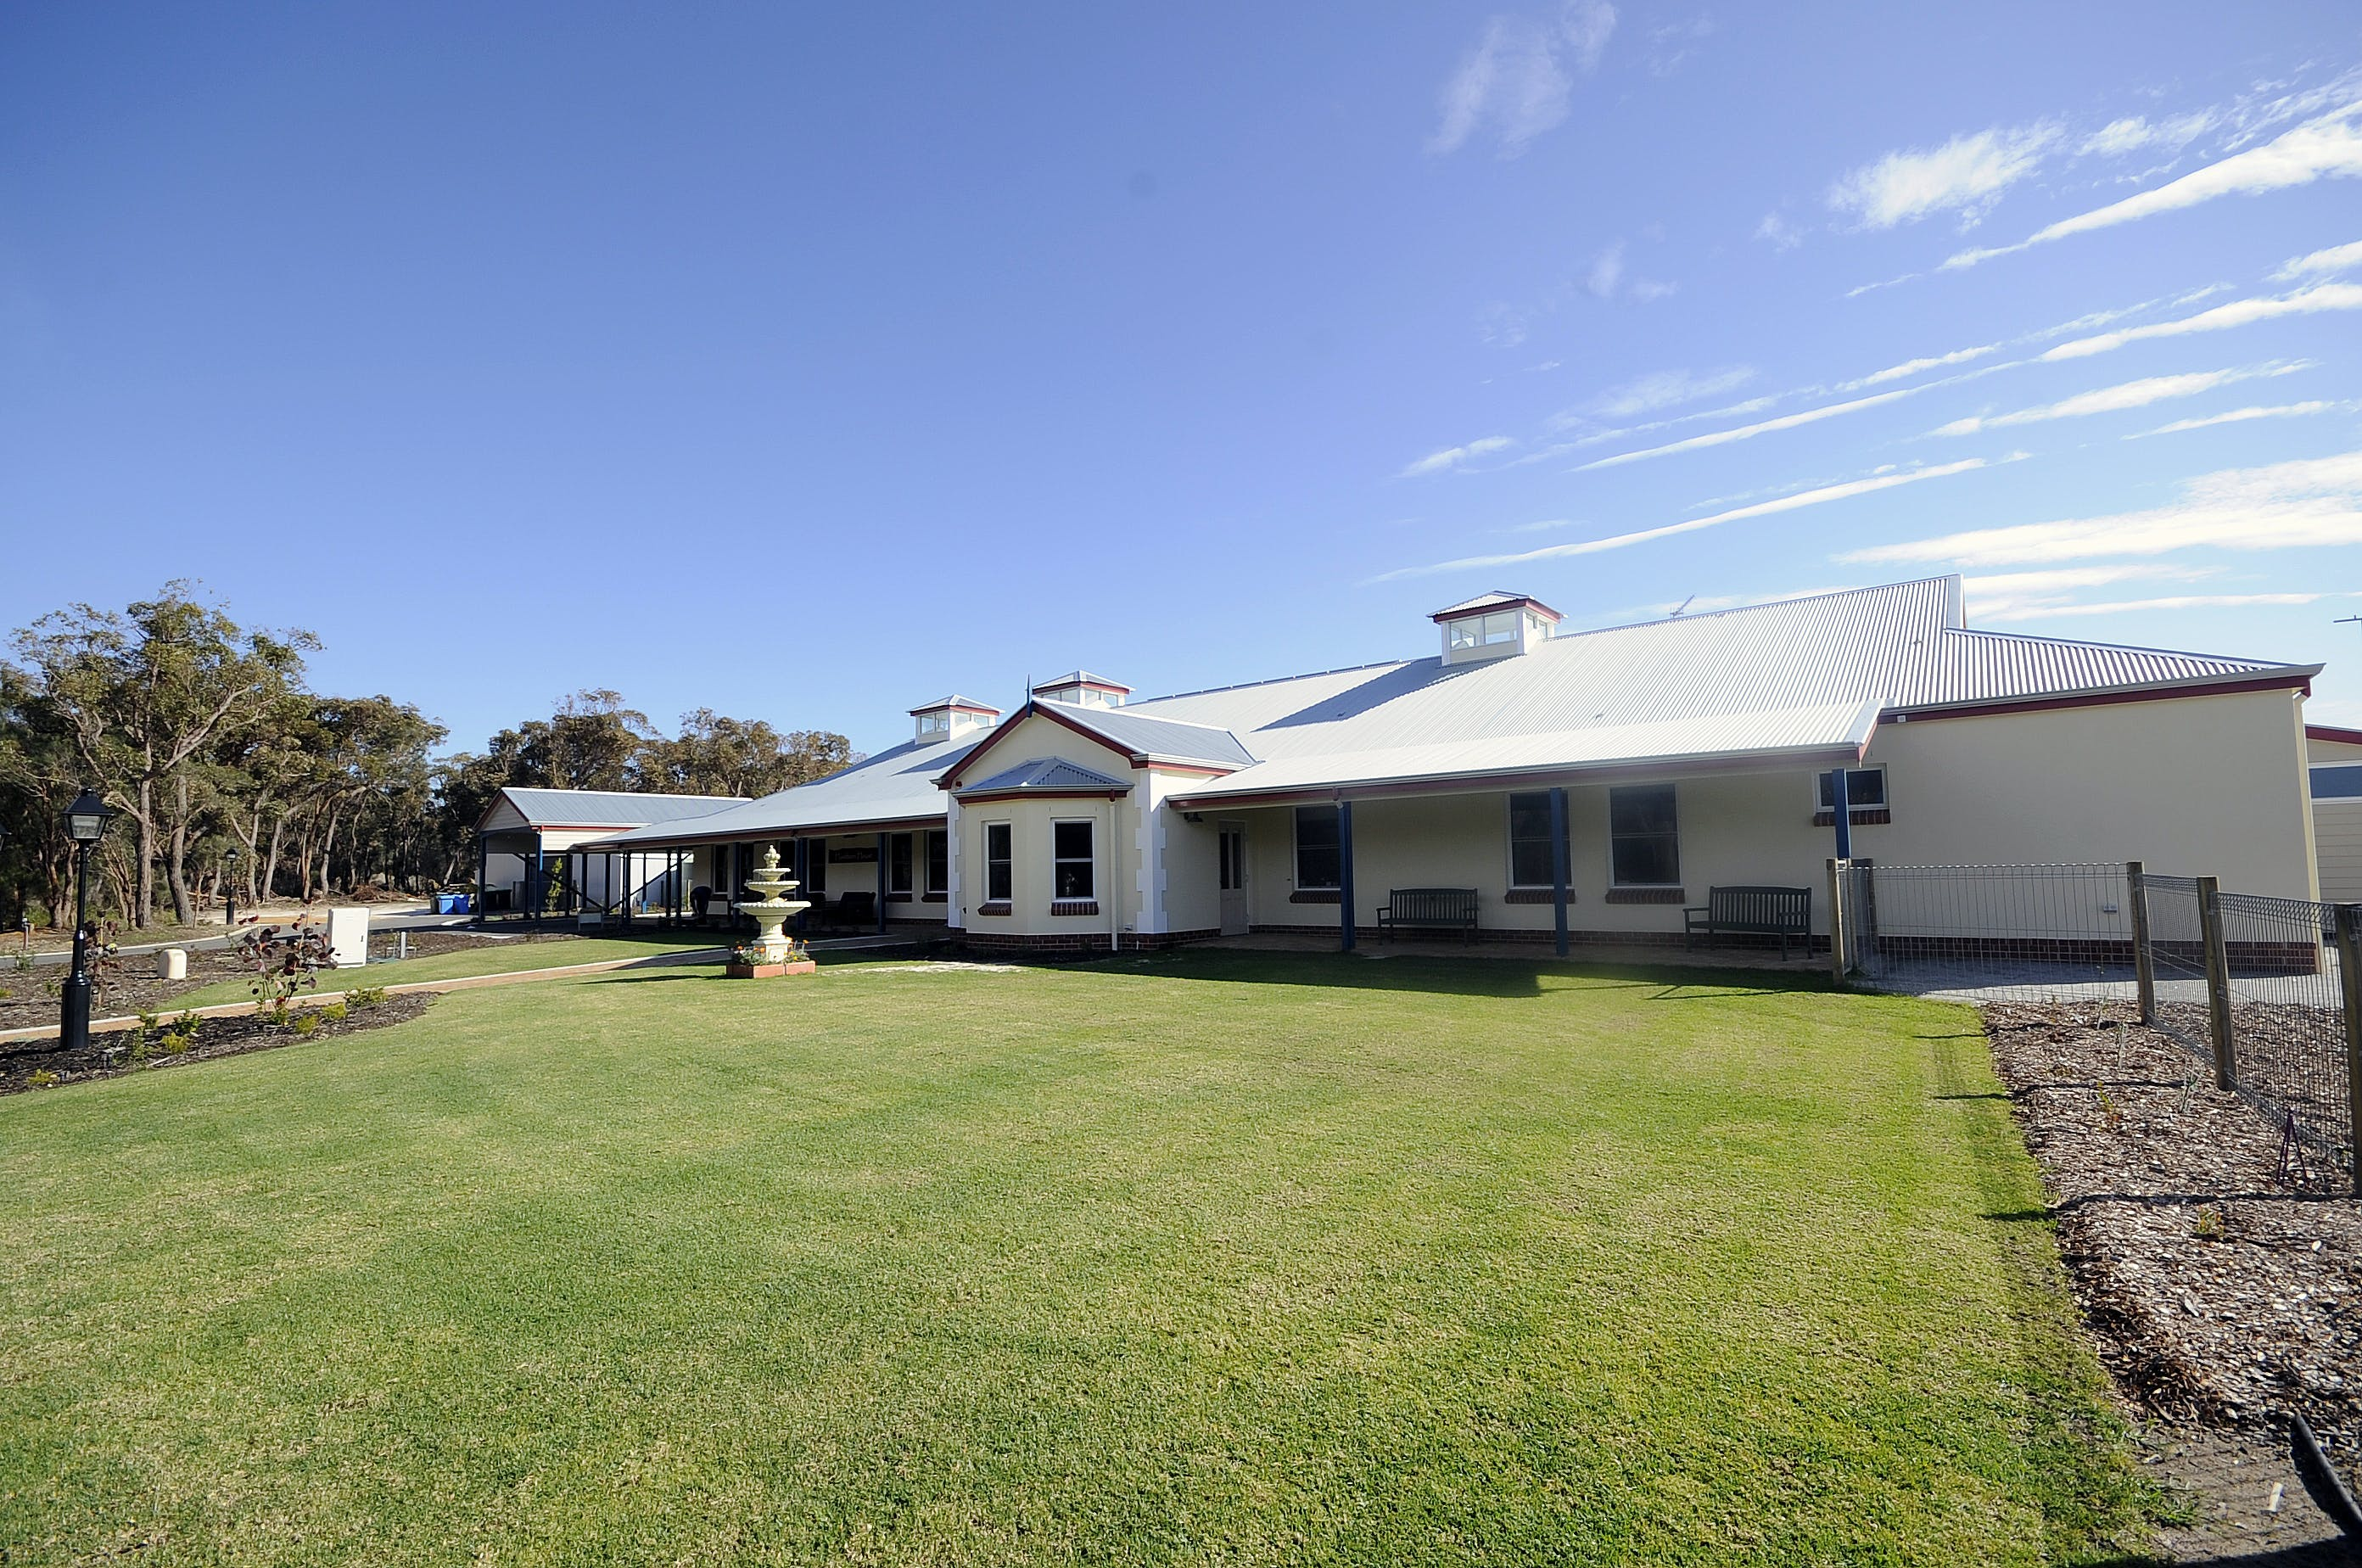 Shire Administration Building, Katanning